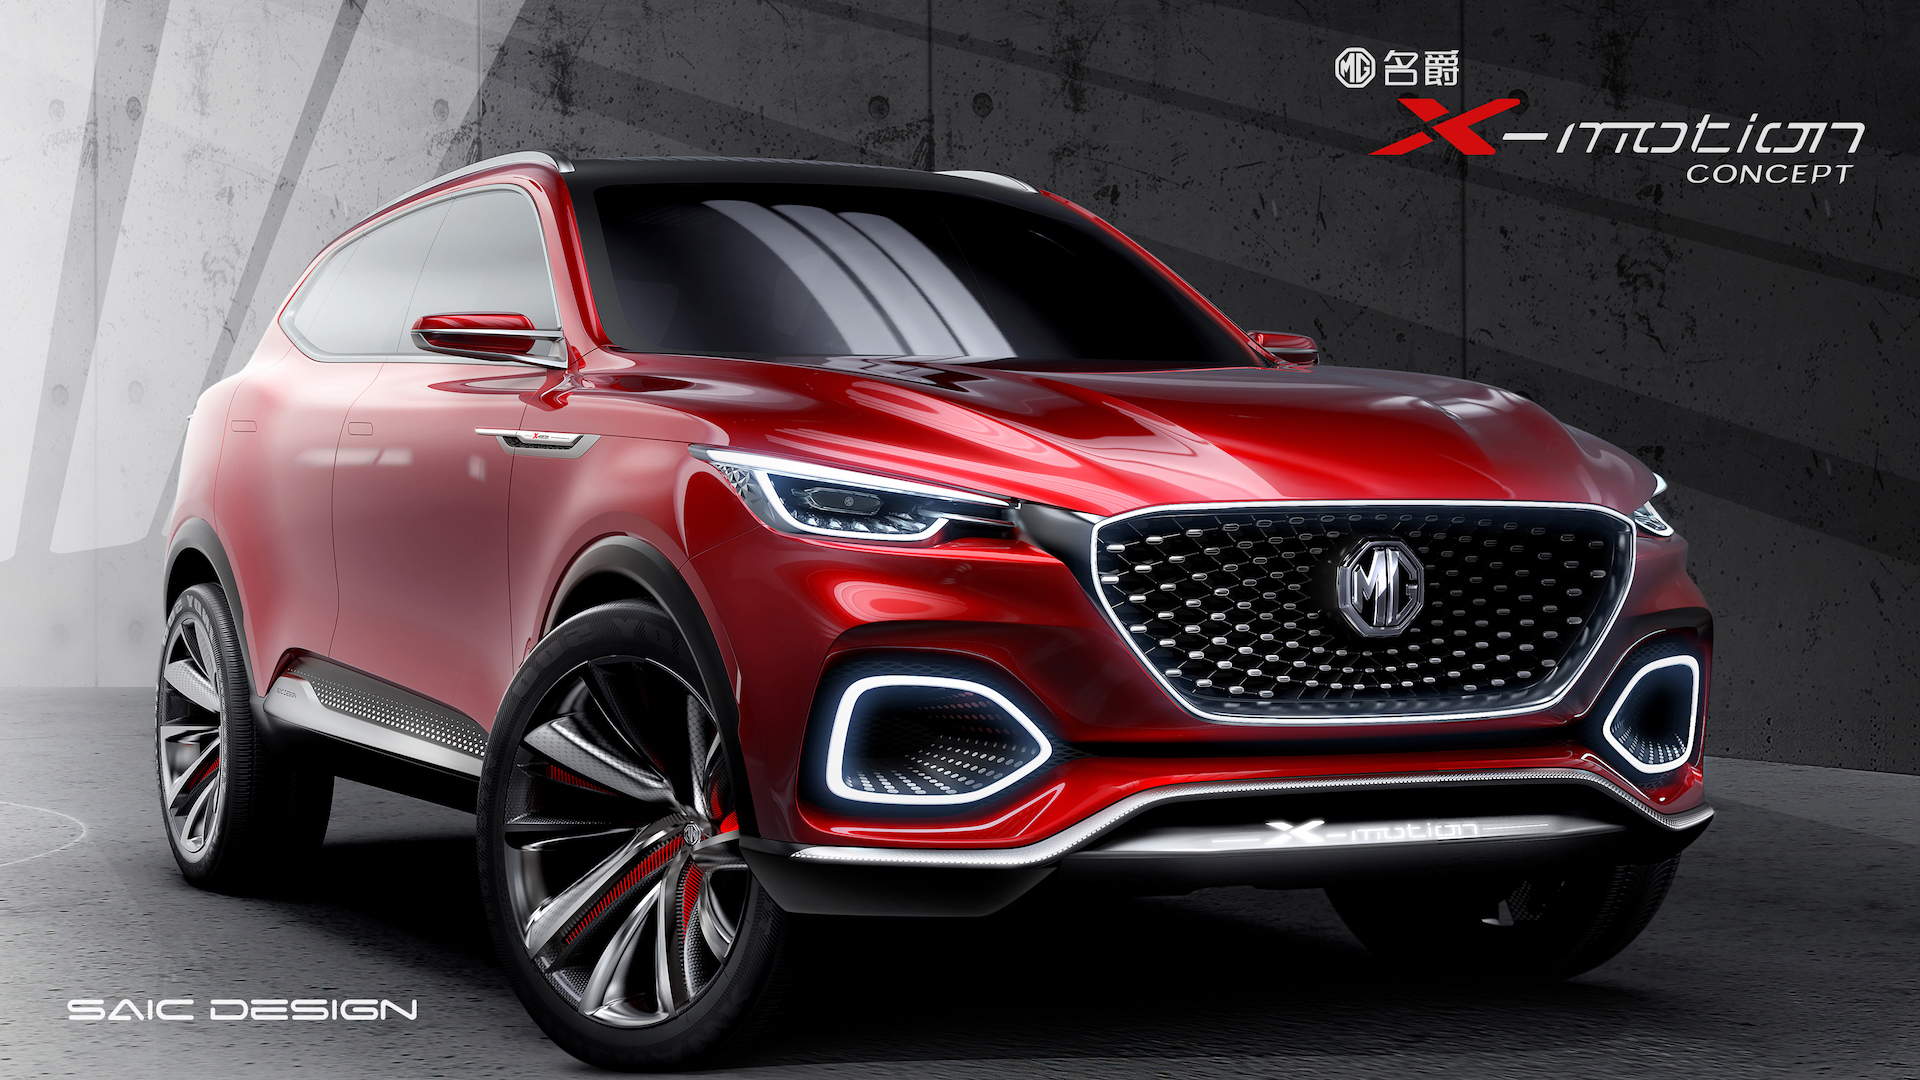 mg x-motion concept debuts in china, previews future suv